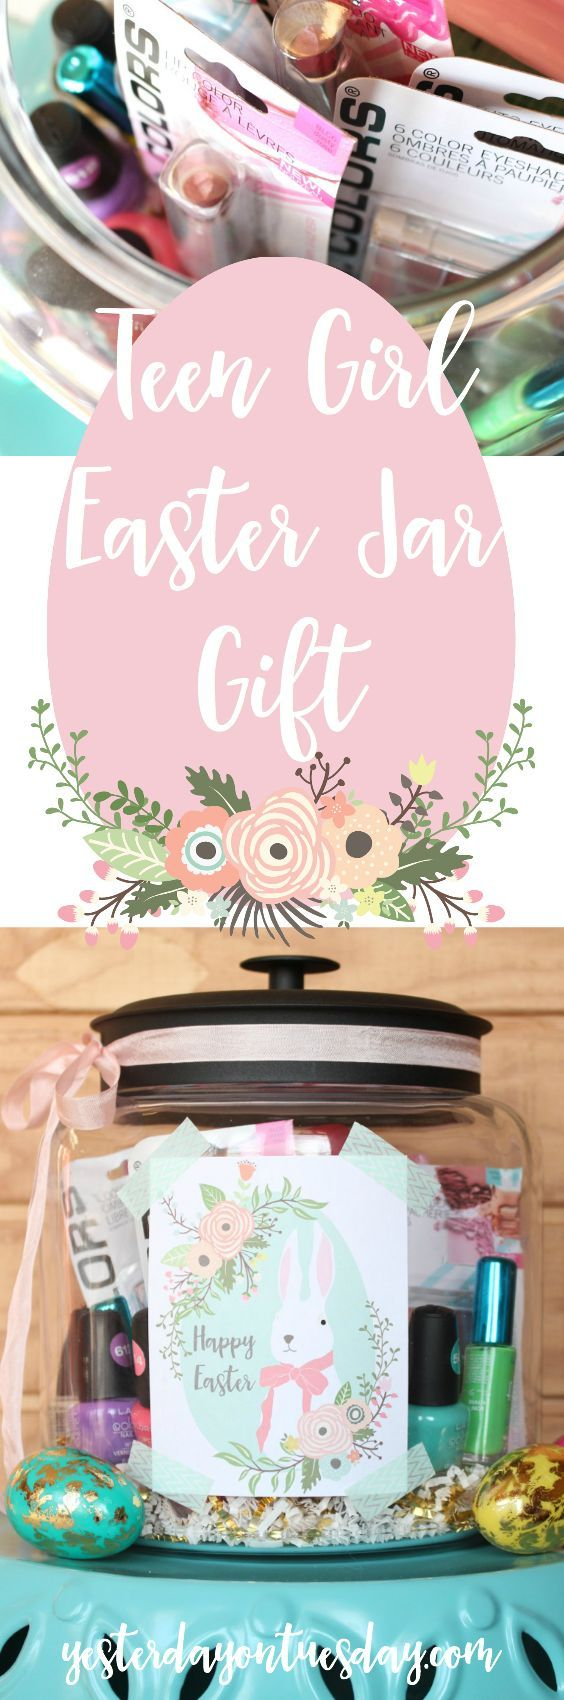 Teen Girl Easter Jar Gift: Pretty Easter present idea for teen girls including Easter printables.  Easter | gift | teen | girl | makeup | jar | printable